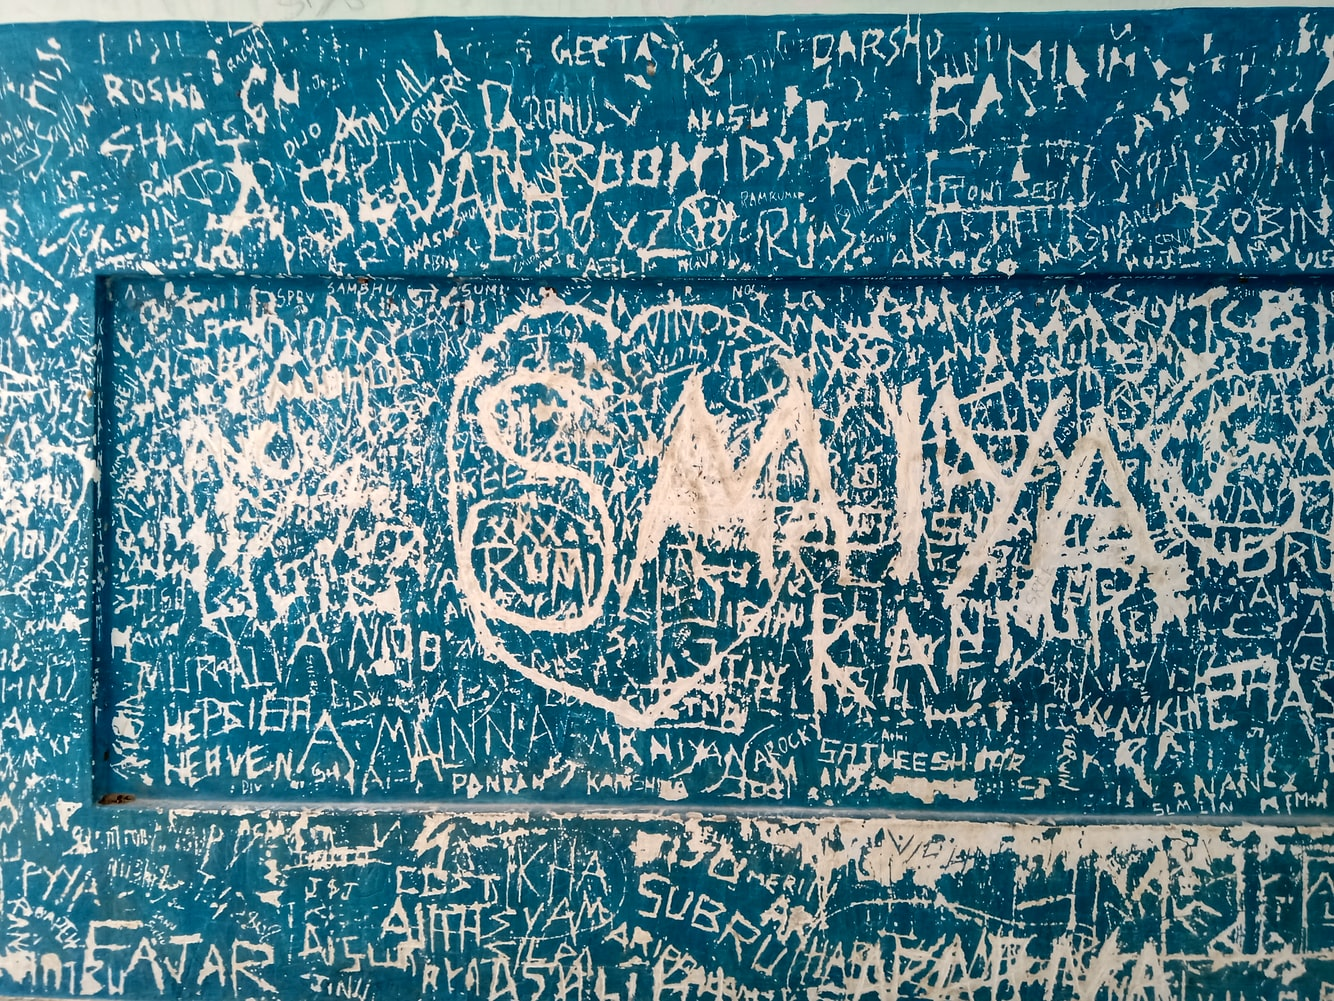 Names, phrases and shapes scratched into paint of blue wall